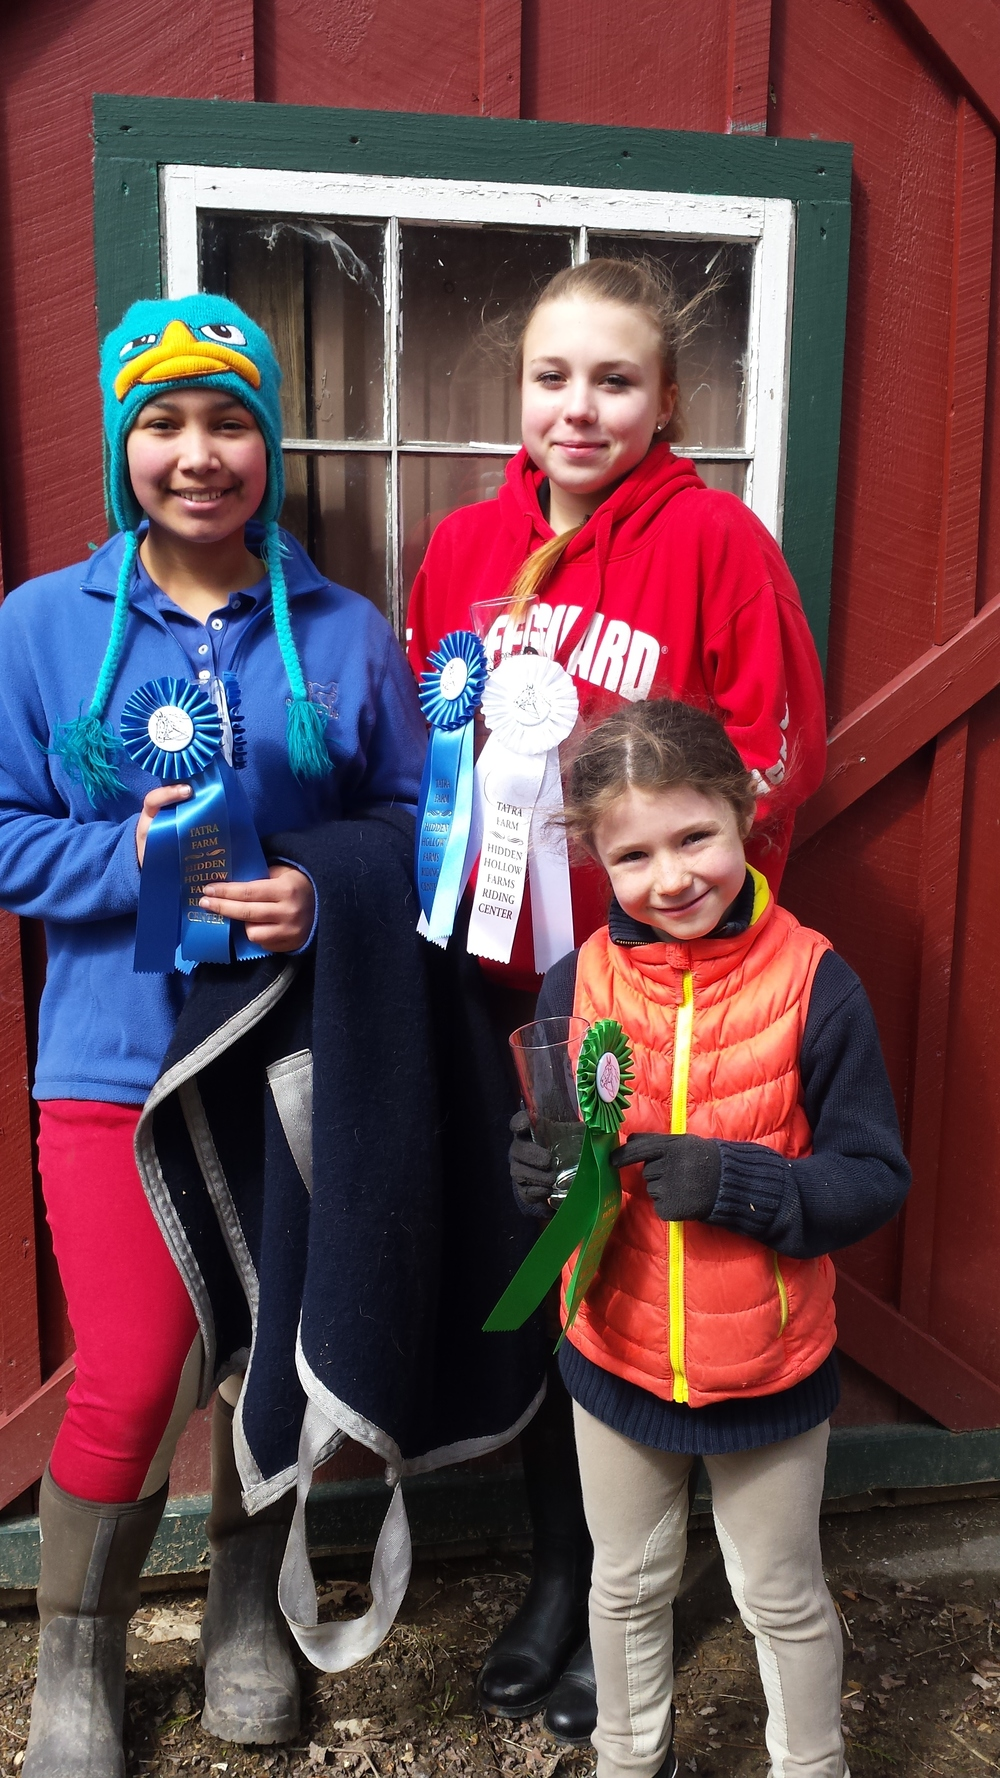 Tyra, Ola and Katherine with their ribbons